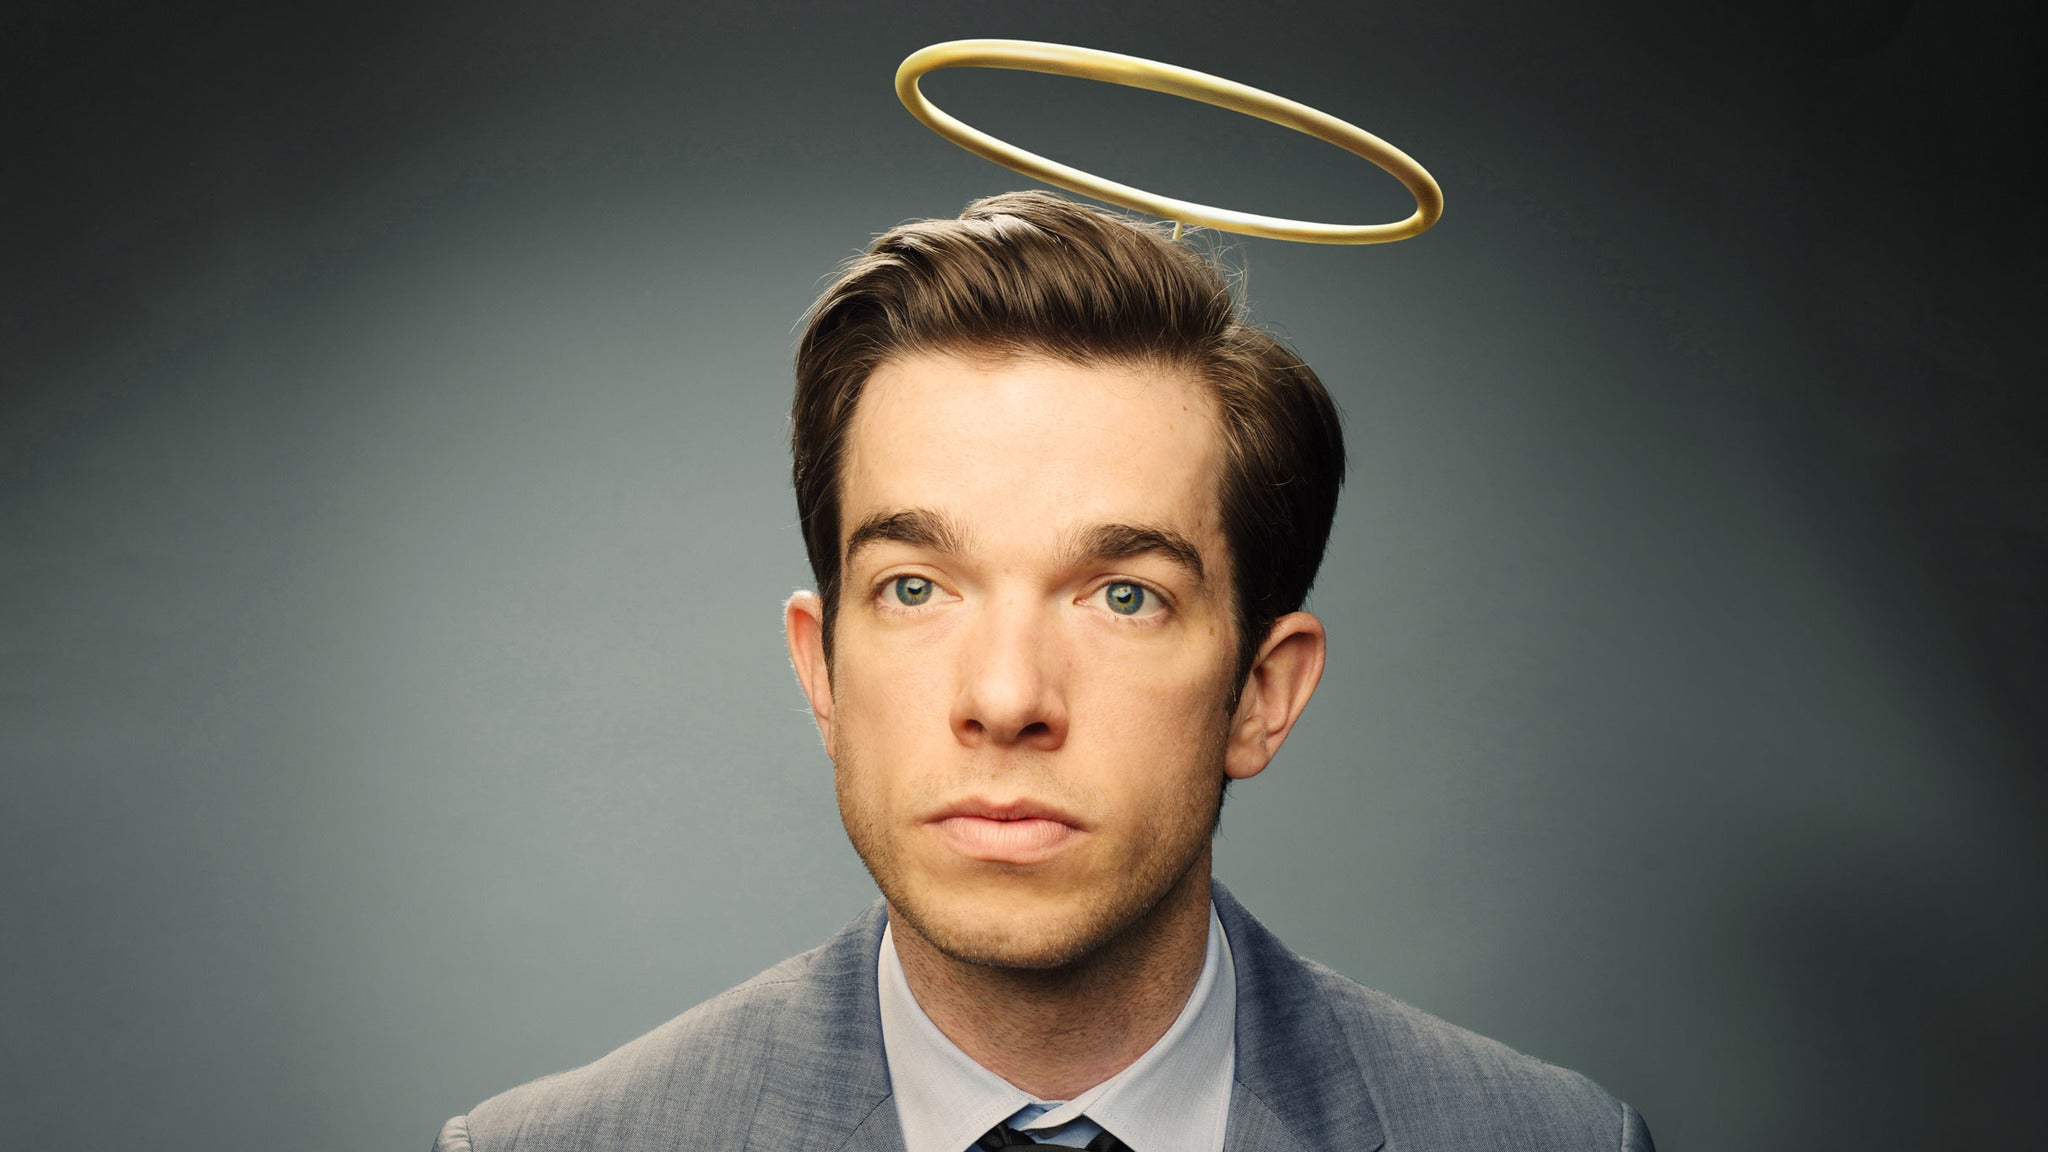 John Mulaney at The Grand Theater at Foxwoods Resort Casino